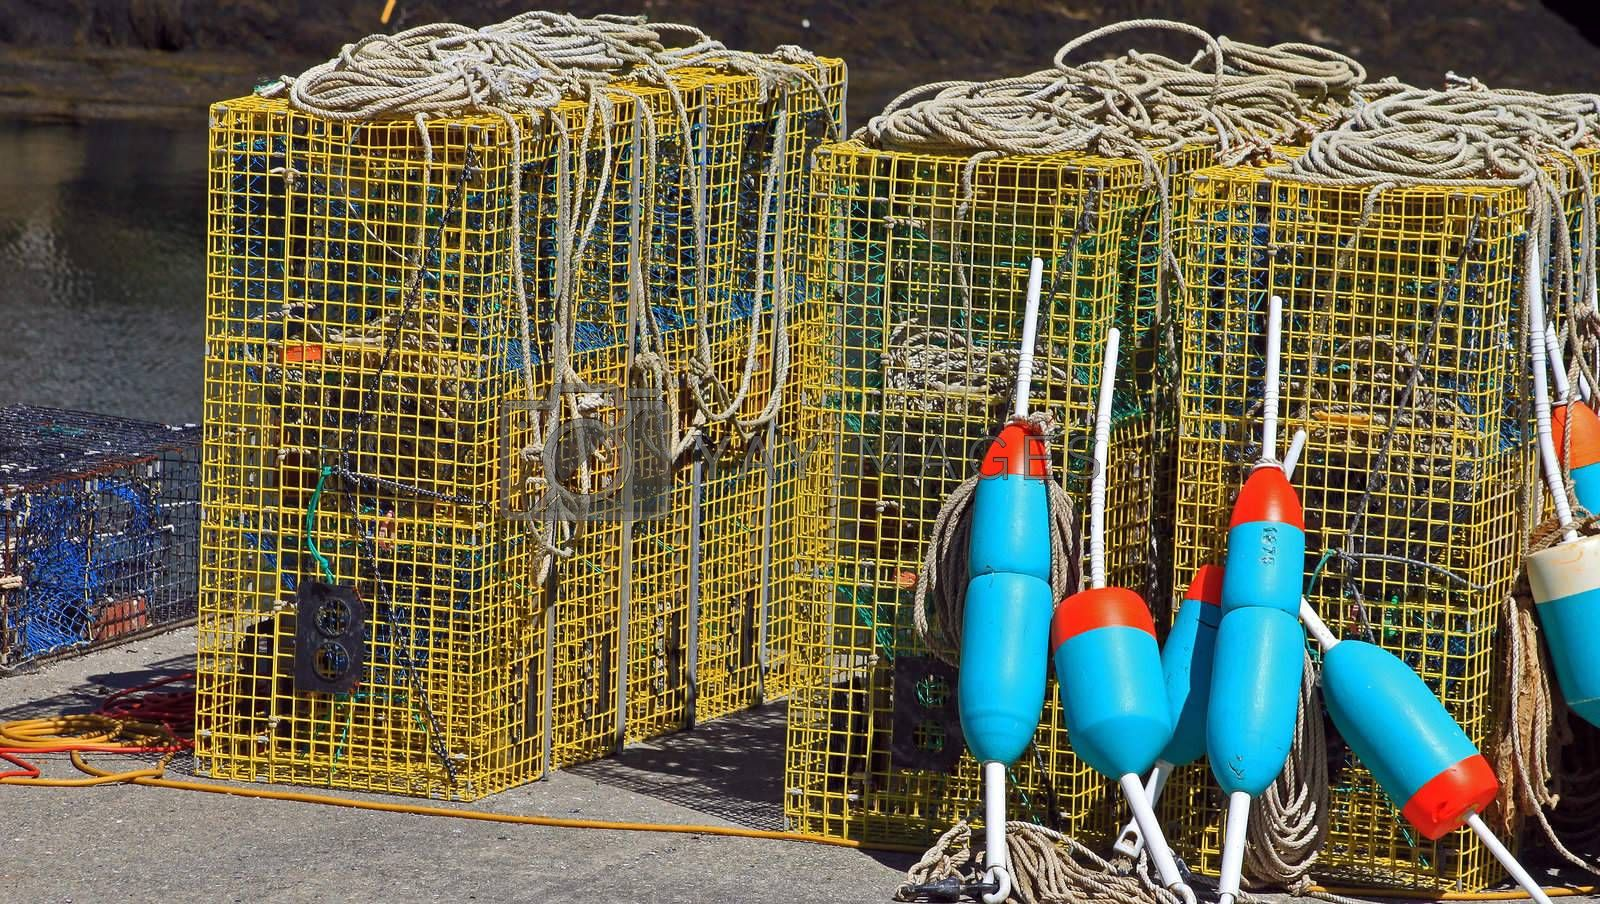 Lobster buoys leaning on cages on fishing wharf